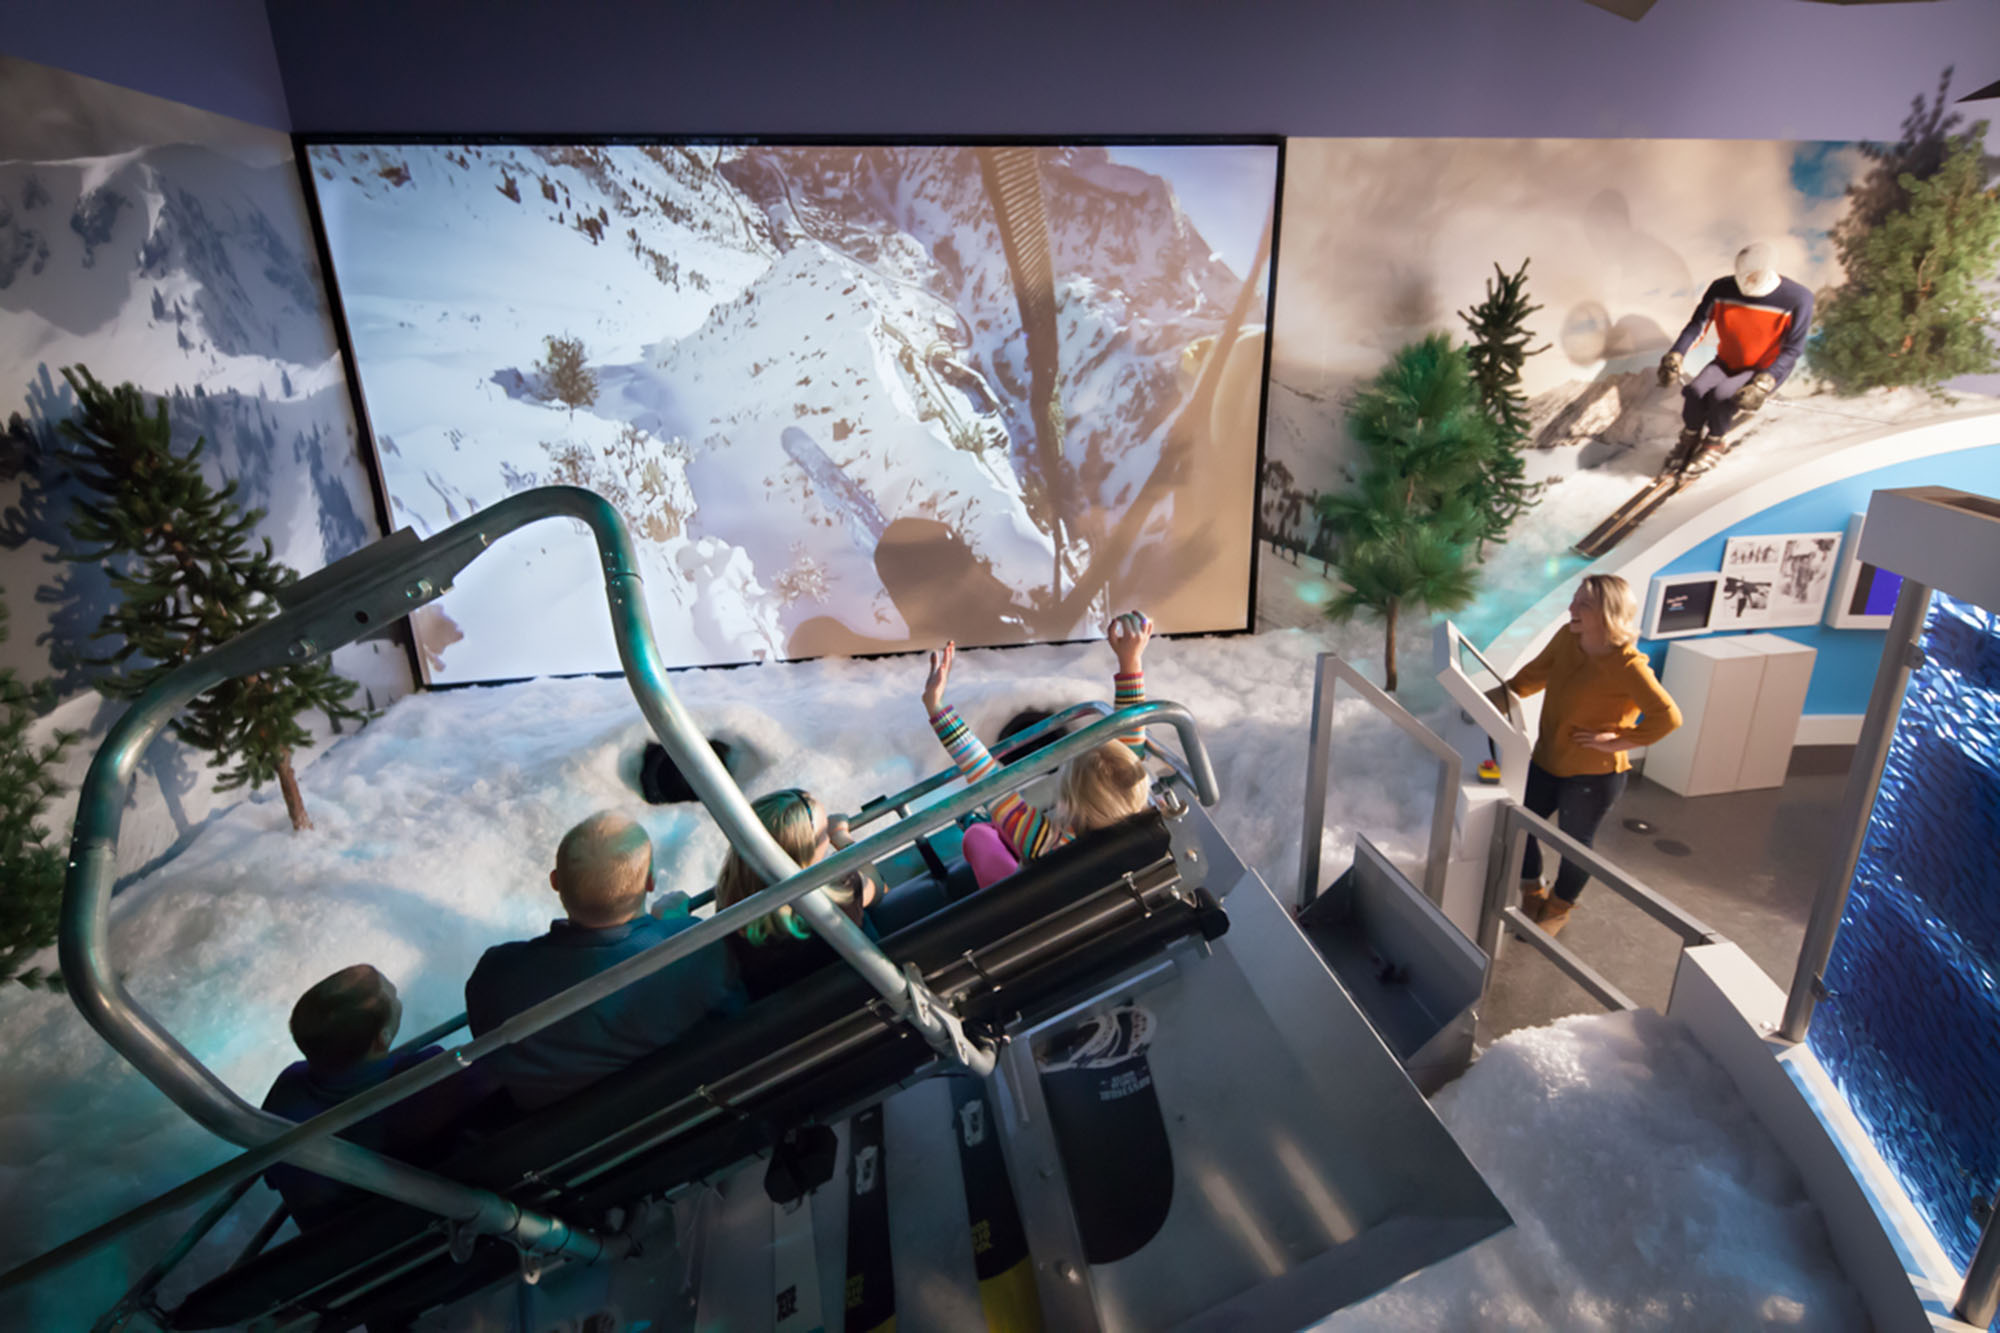 The Virtual Ski Experience ride that allows riders of all ages and abilities to experience what it would be like to go skiing.